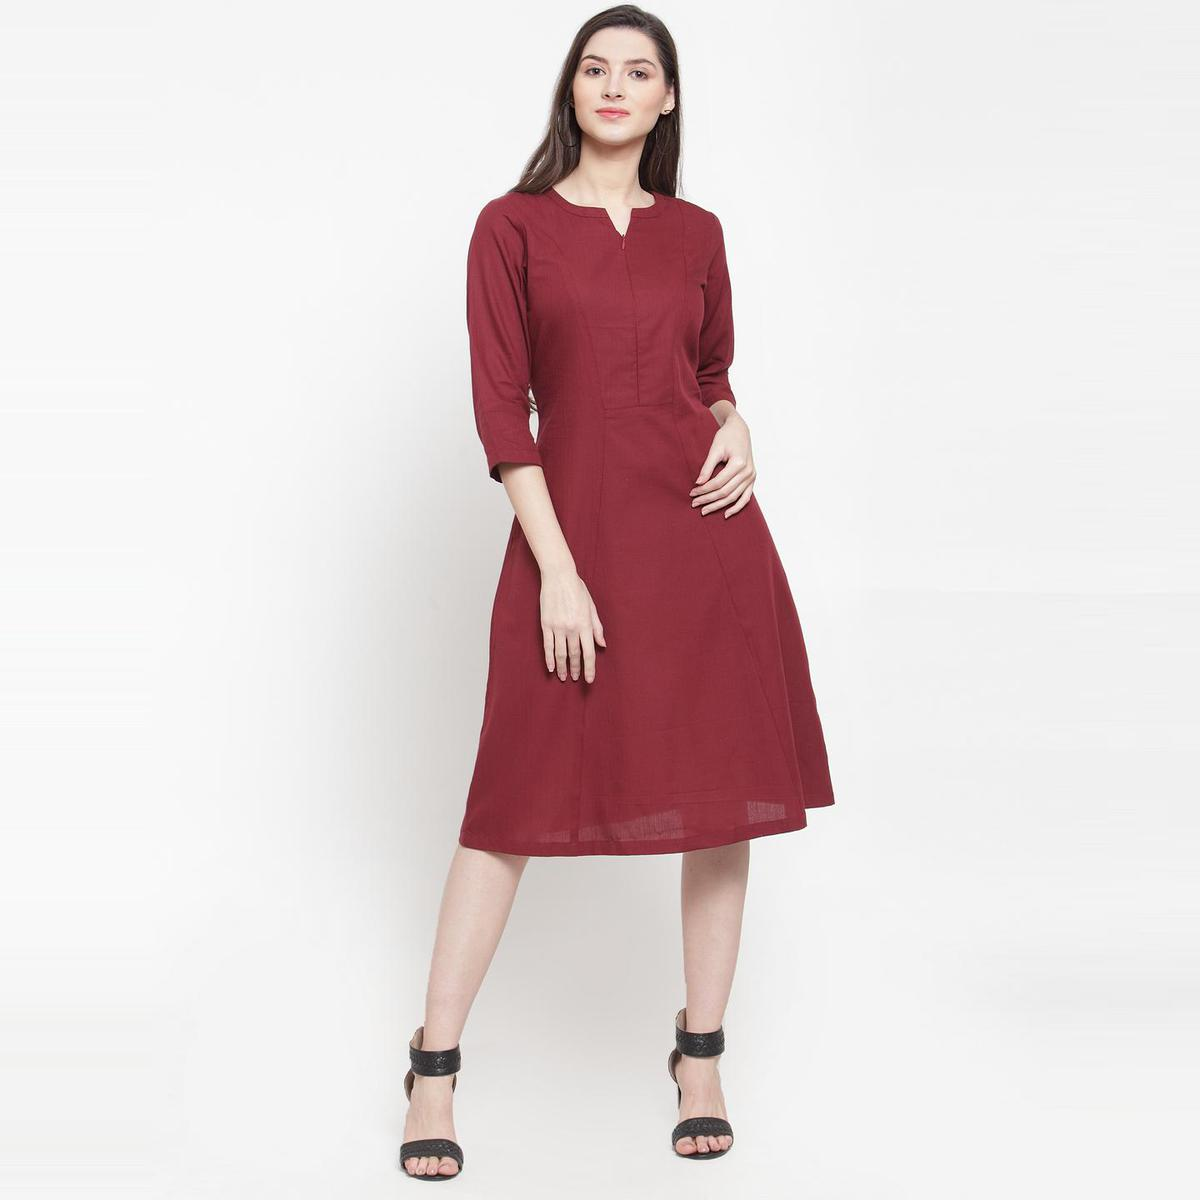 Ayaany - Maroon Colored Casual Wear Cotton Dress